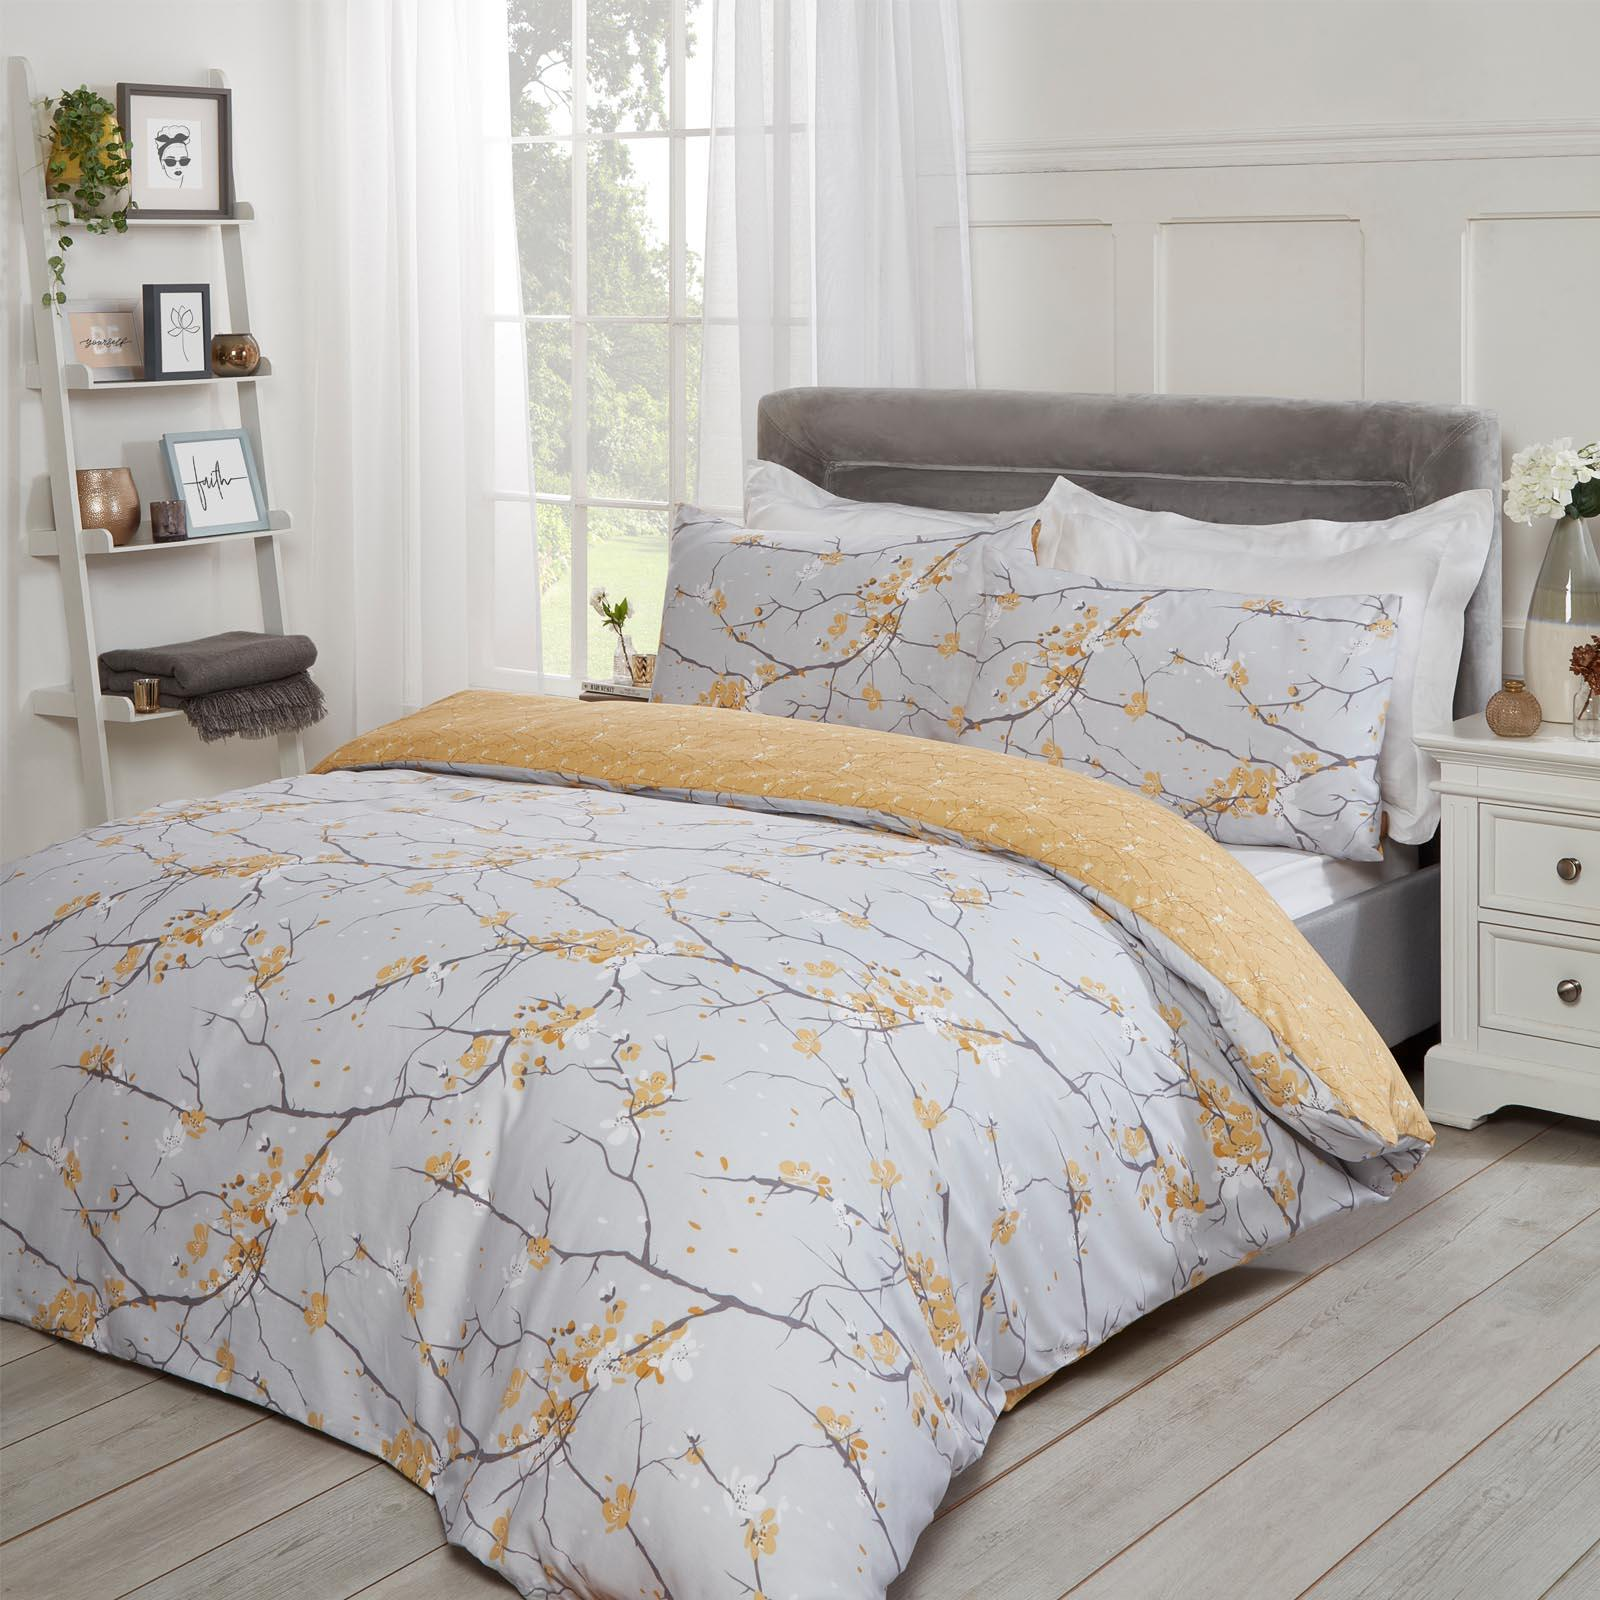 thumbnail 23 - Dreamscene Spring Blossoms Duvet Cover with Pillowcases Bedding Set Blush Ochre